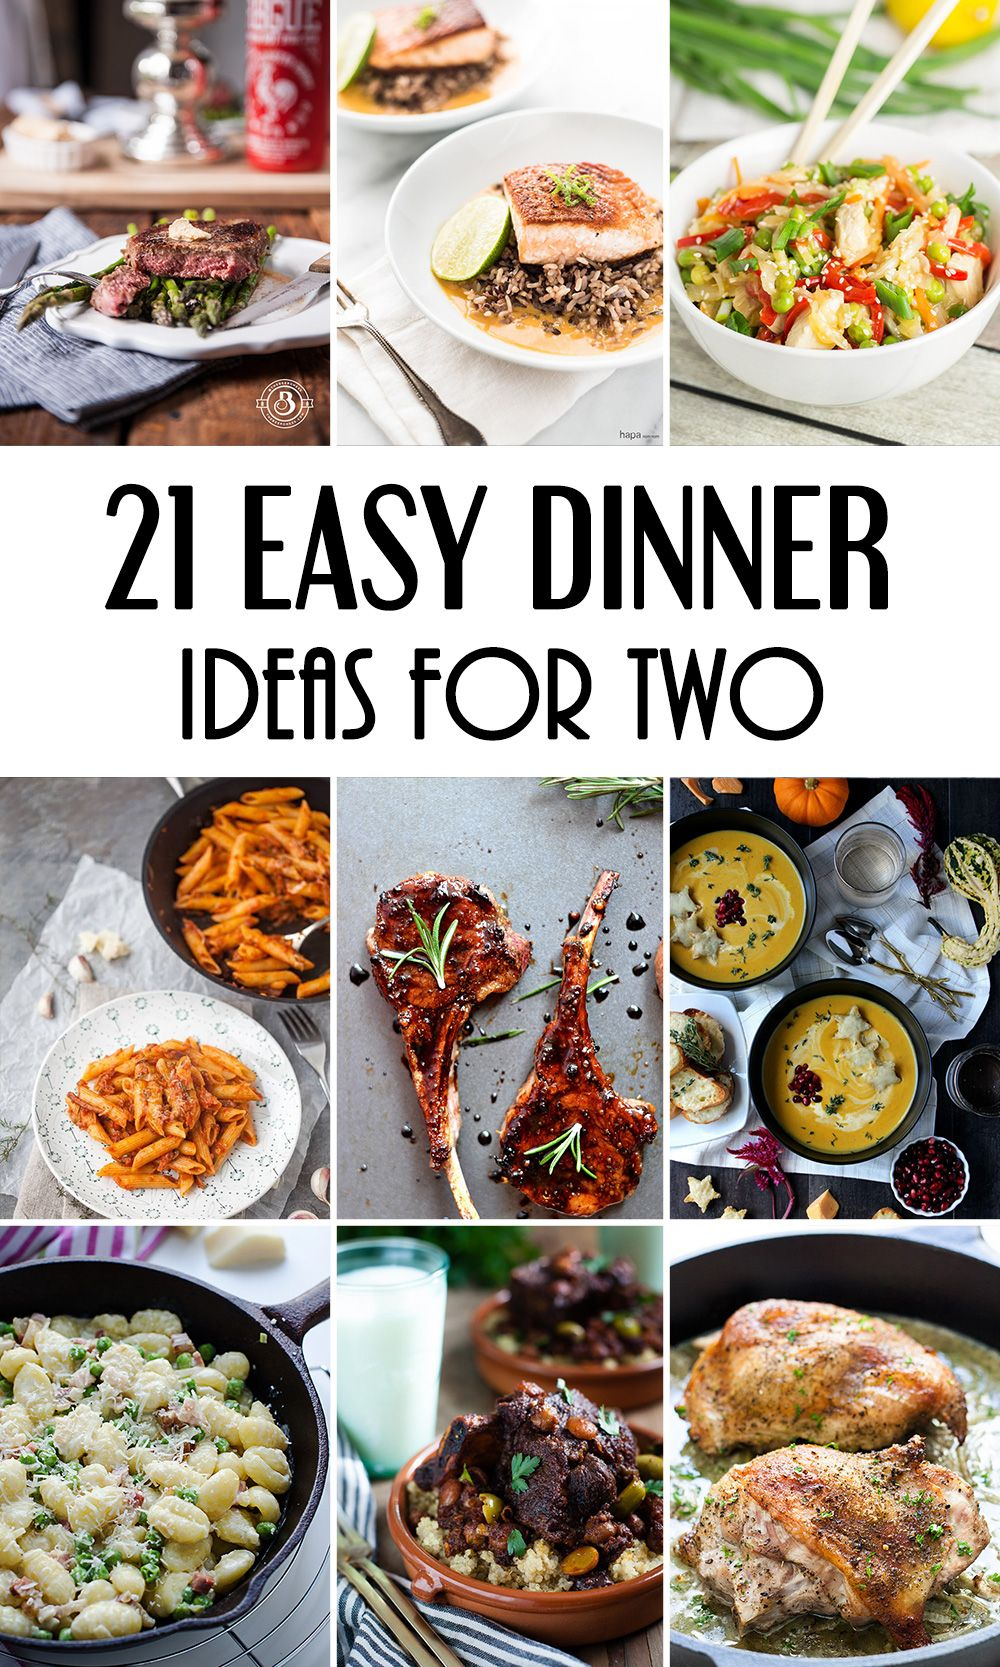 21 easy dinner ideas for two that will impress your loved one | food